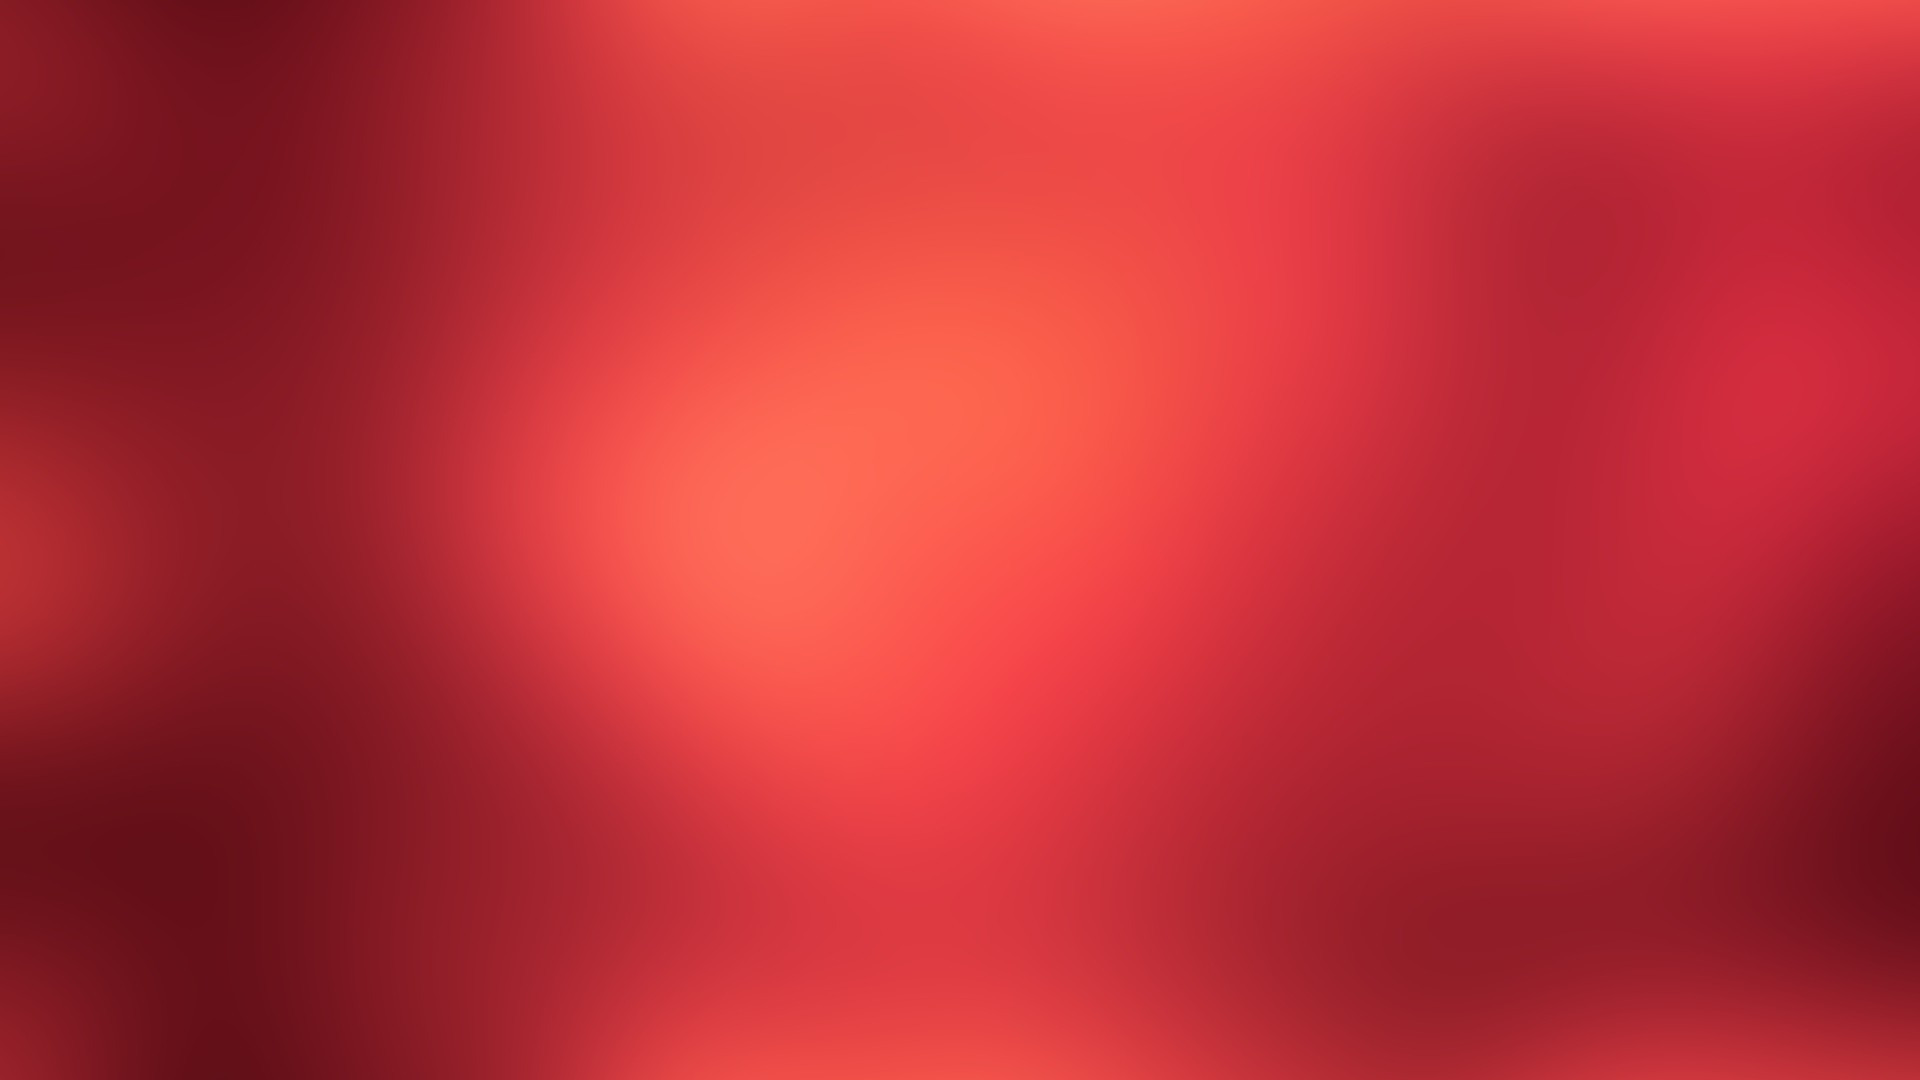 Download Wallpaper solid, red, bright, shiny Full HD 1080p .